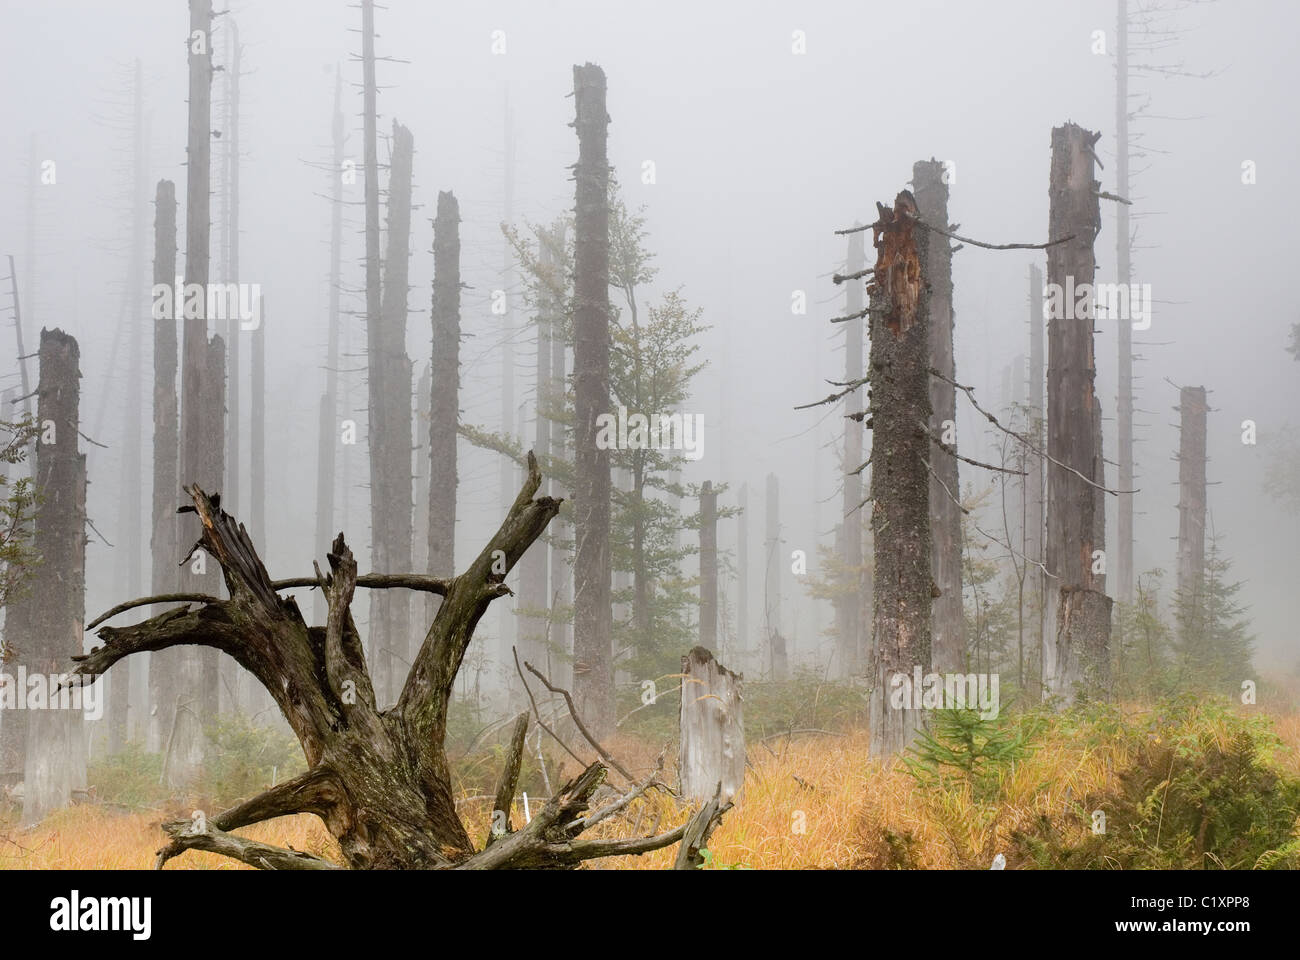 Norway Spruce Picea abies forest and infestation of Spruce Bark Beetle Bavarian Forest National Park Germany Stock Photo